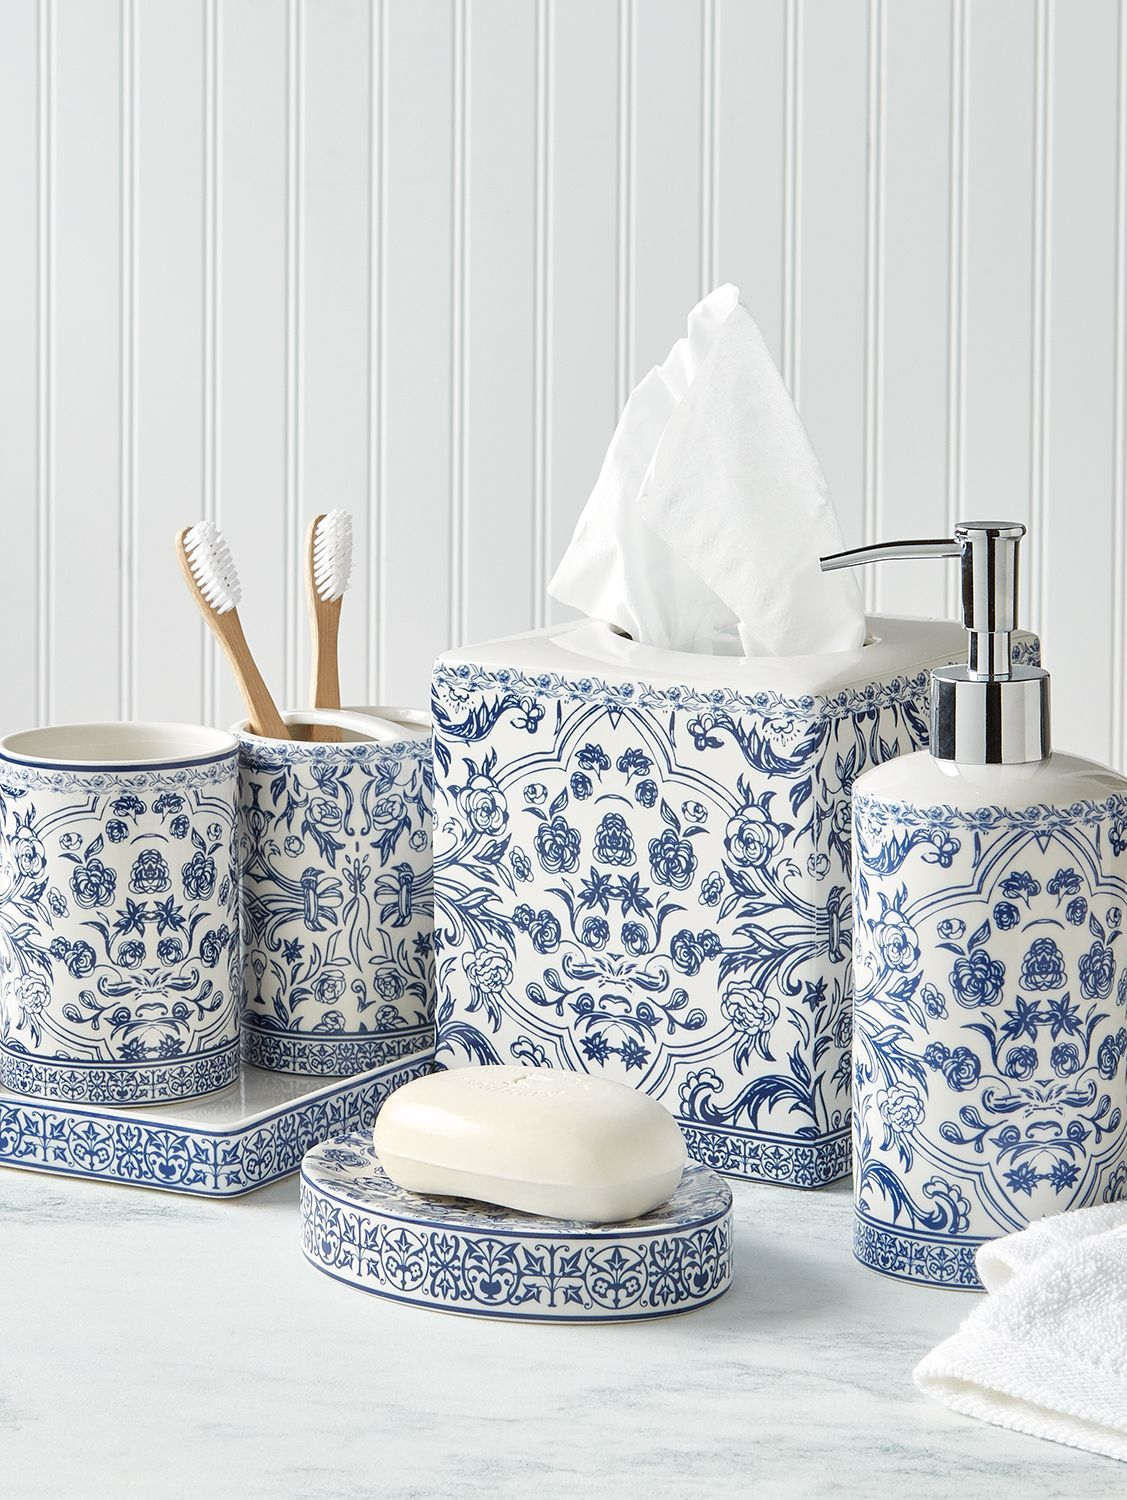 Photo of Blue Toile Bath Accessory Collection